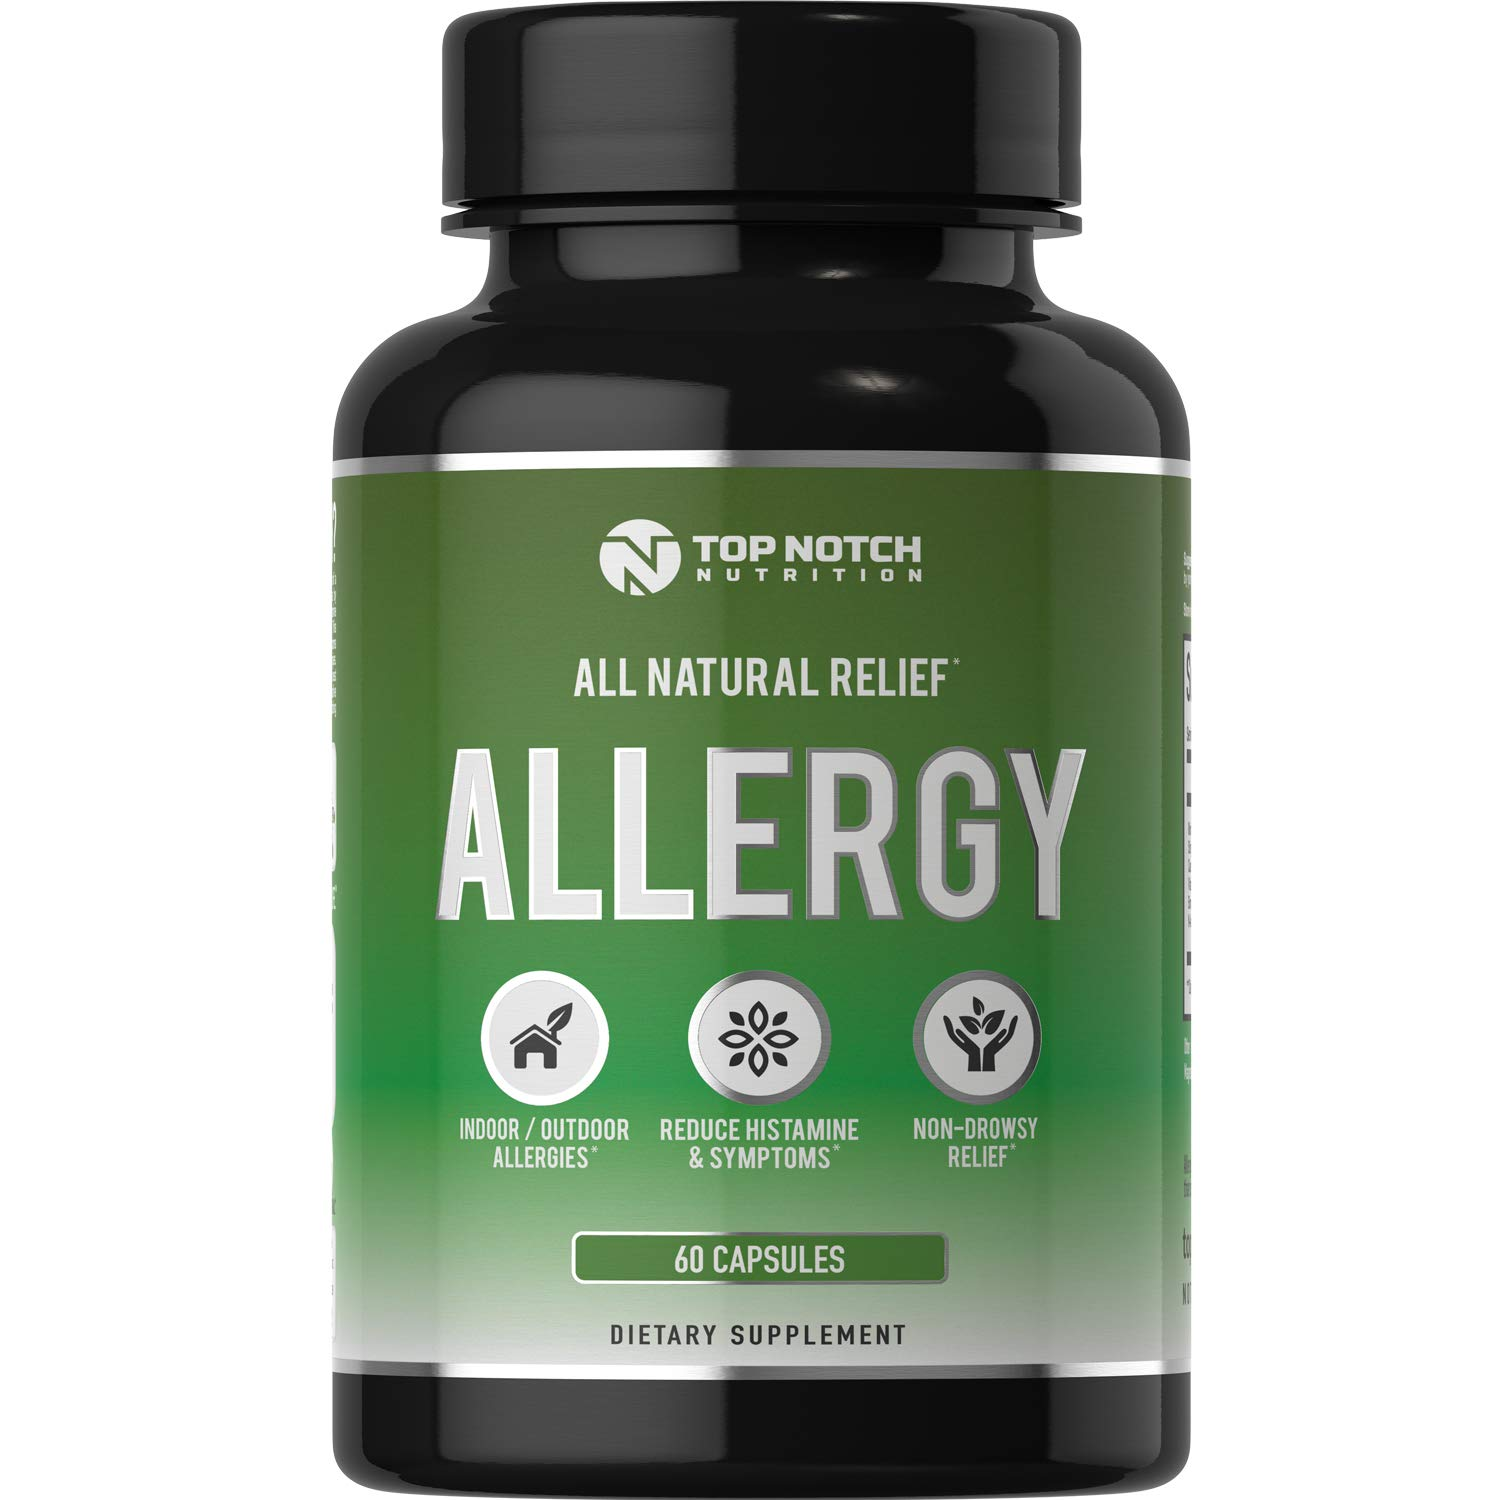 Top Notch Nutrition Natural Allergy Relief Pills Outdoor Indoor Pet Allergies Food Sensitivities Healthy Histamine Levels Antioxidants Moringa Stinging Nettle Quercetin Vitamin C Bromelain and NAC by TOP NOTCH NUTRITION